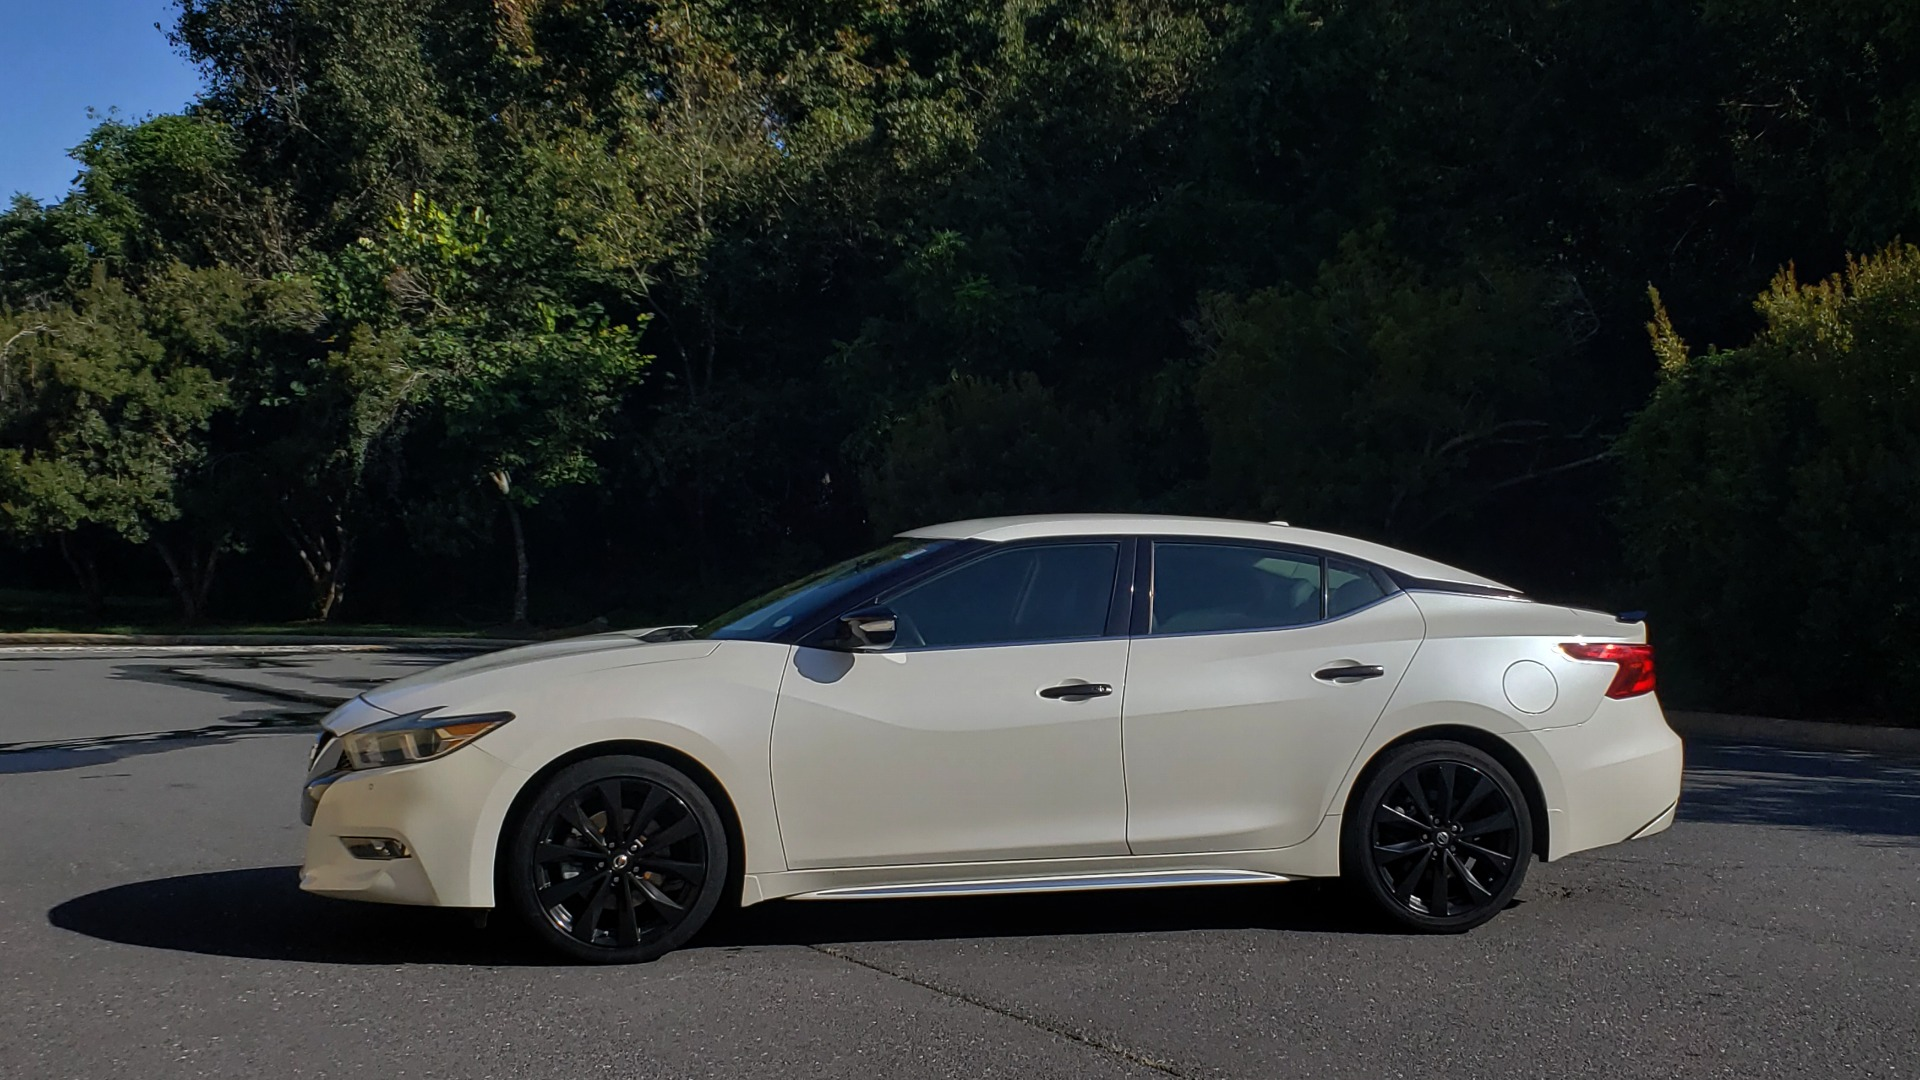 Used 2016 Nissan MAXIMA 3.5 SR / NAV / BOSE / VENT STS / CVT / REARVIEW for sale Sold at Formula Imports in Charlotte NC 28227 2